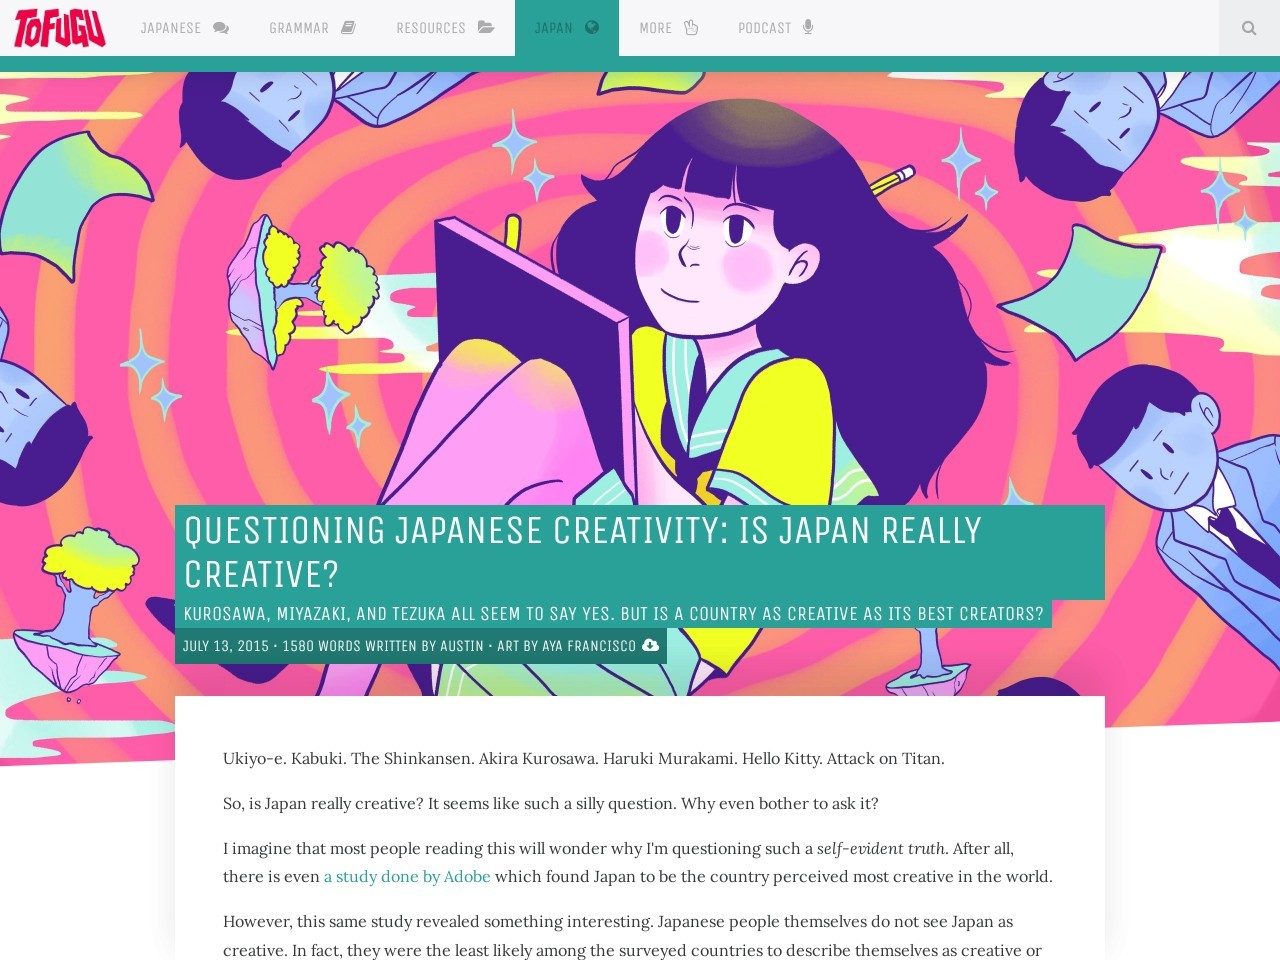 Questioning Japanese Creativity: Is Japan Creative? – Tofugu